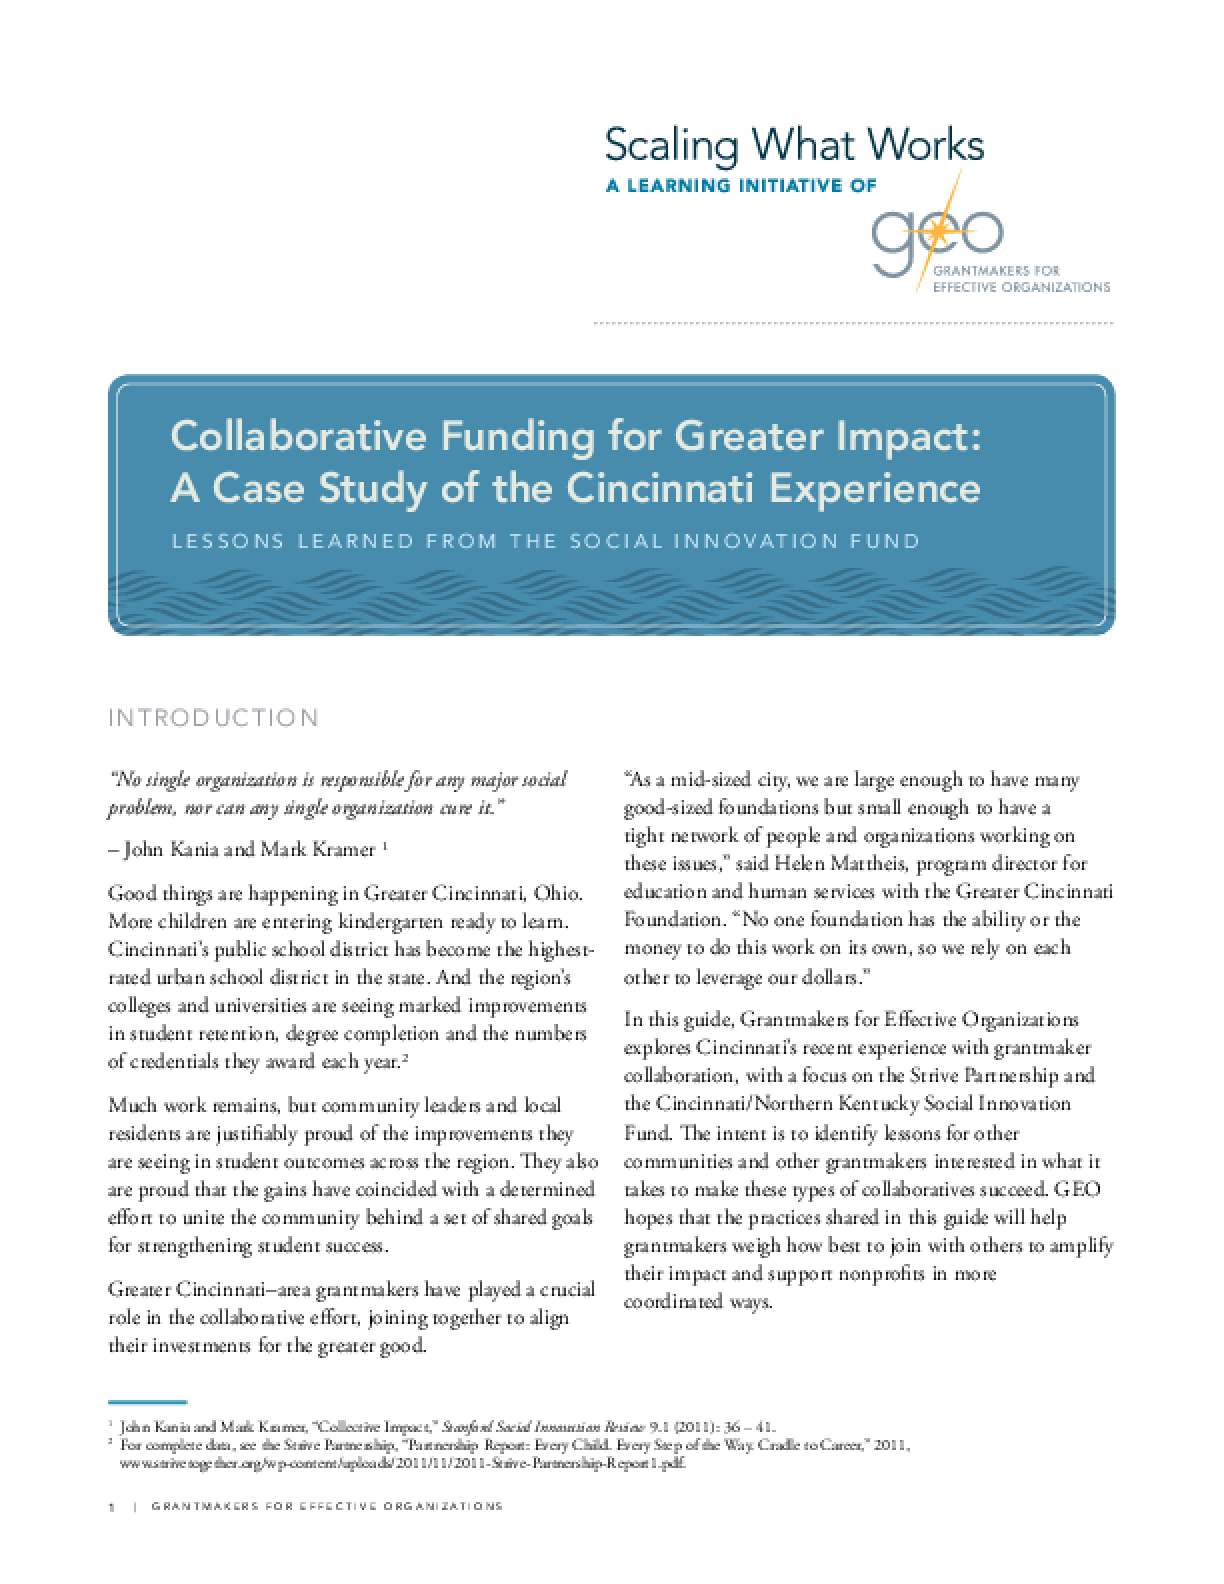 Collaborative Funding for Greater Impact: A Case Study of the Cincinnati Experience: Lessons Learned From the Social Innovation Fund